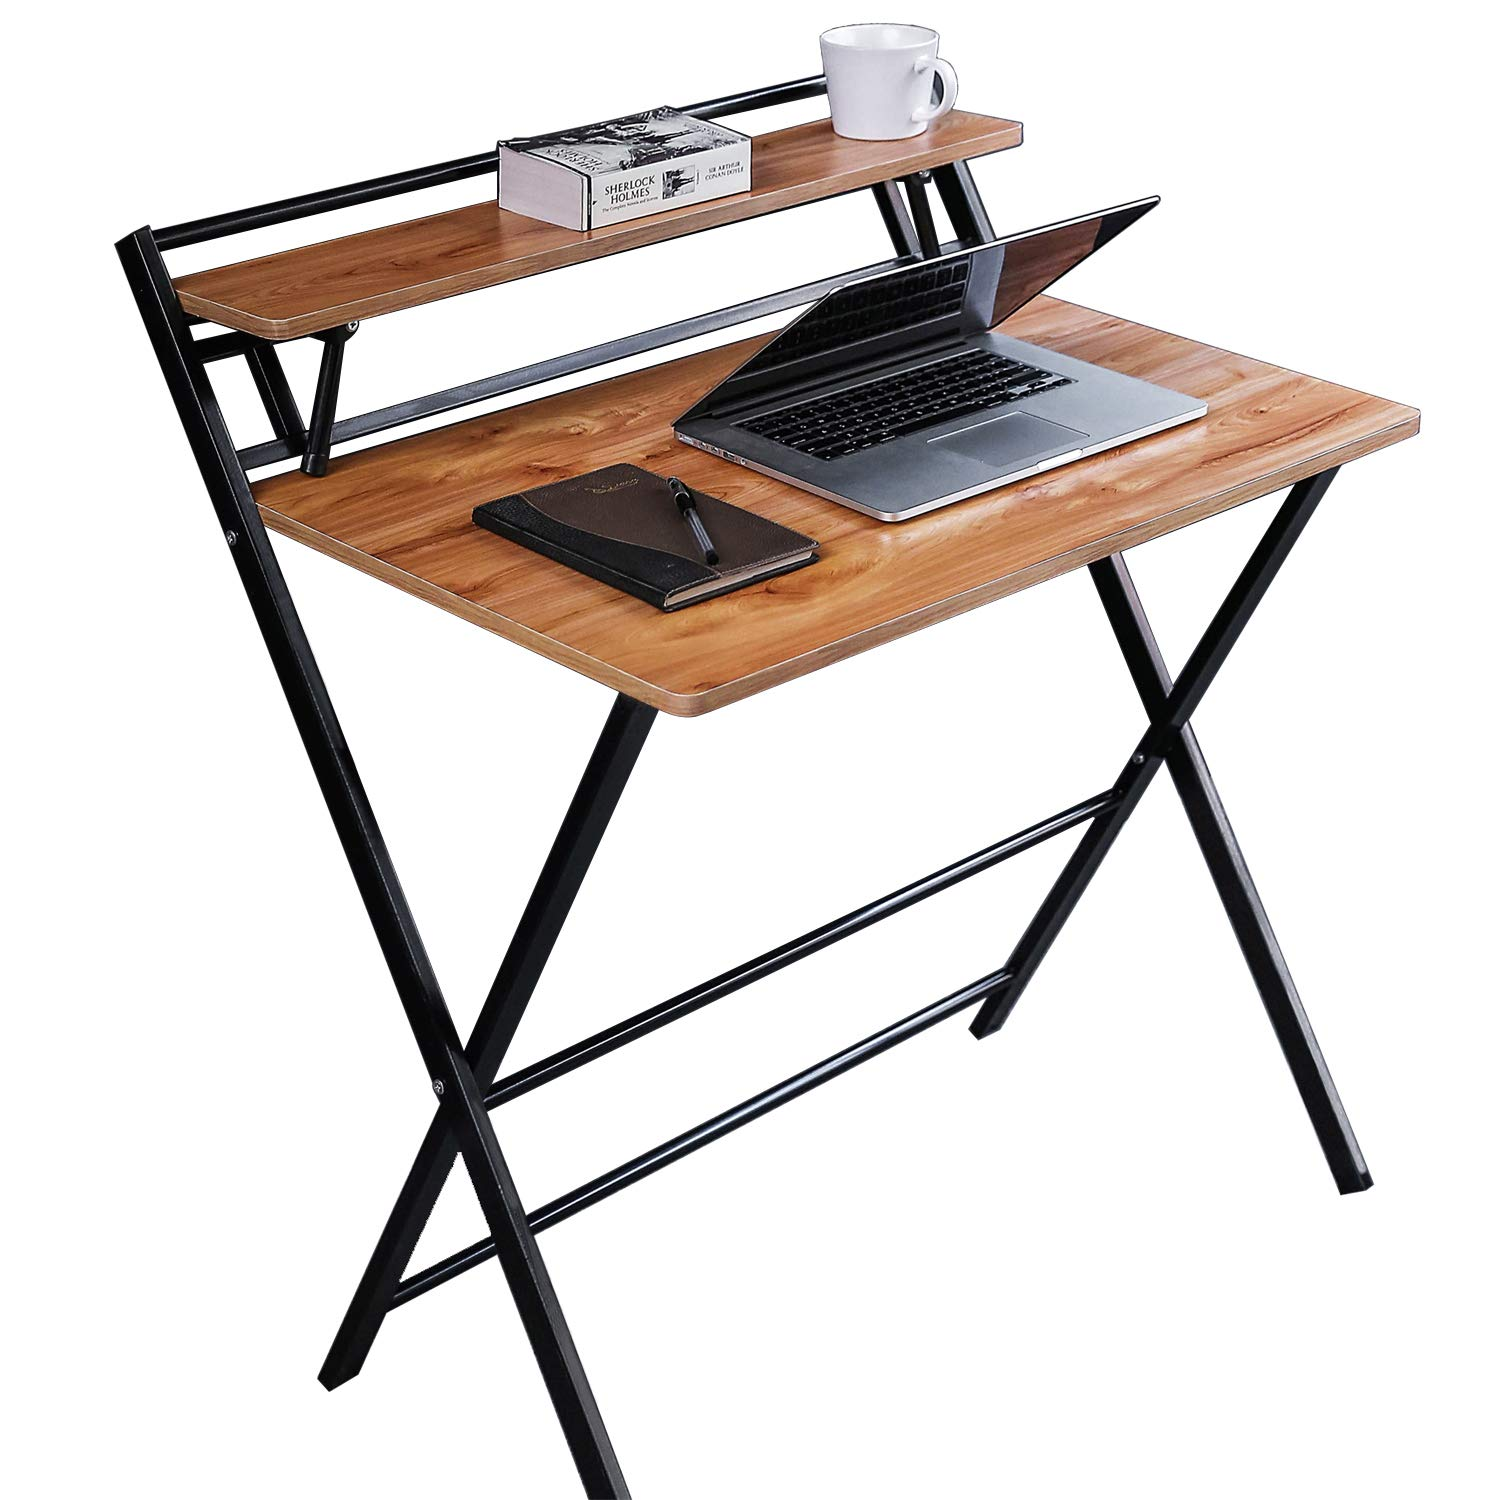 JIWU 2-Style Folding Desk for Small Space, Home Corner Desks Simple Computer Desk with Shelf, Folding Laptop Table by JIWU